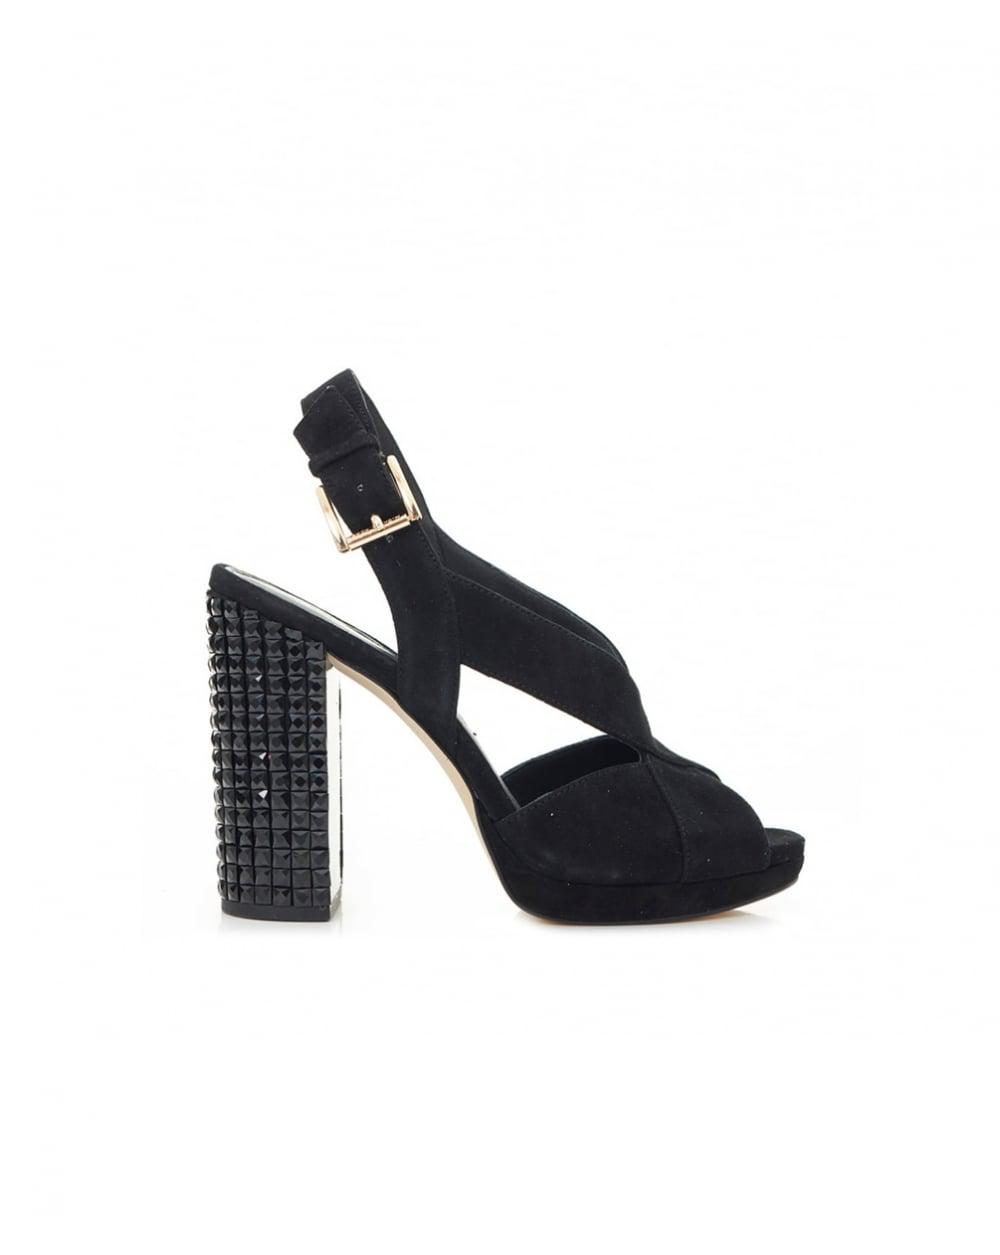 7727eb391588 Lyst - Michael Kors Becky Platform Studded Heel Shoes in Black